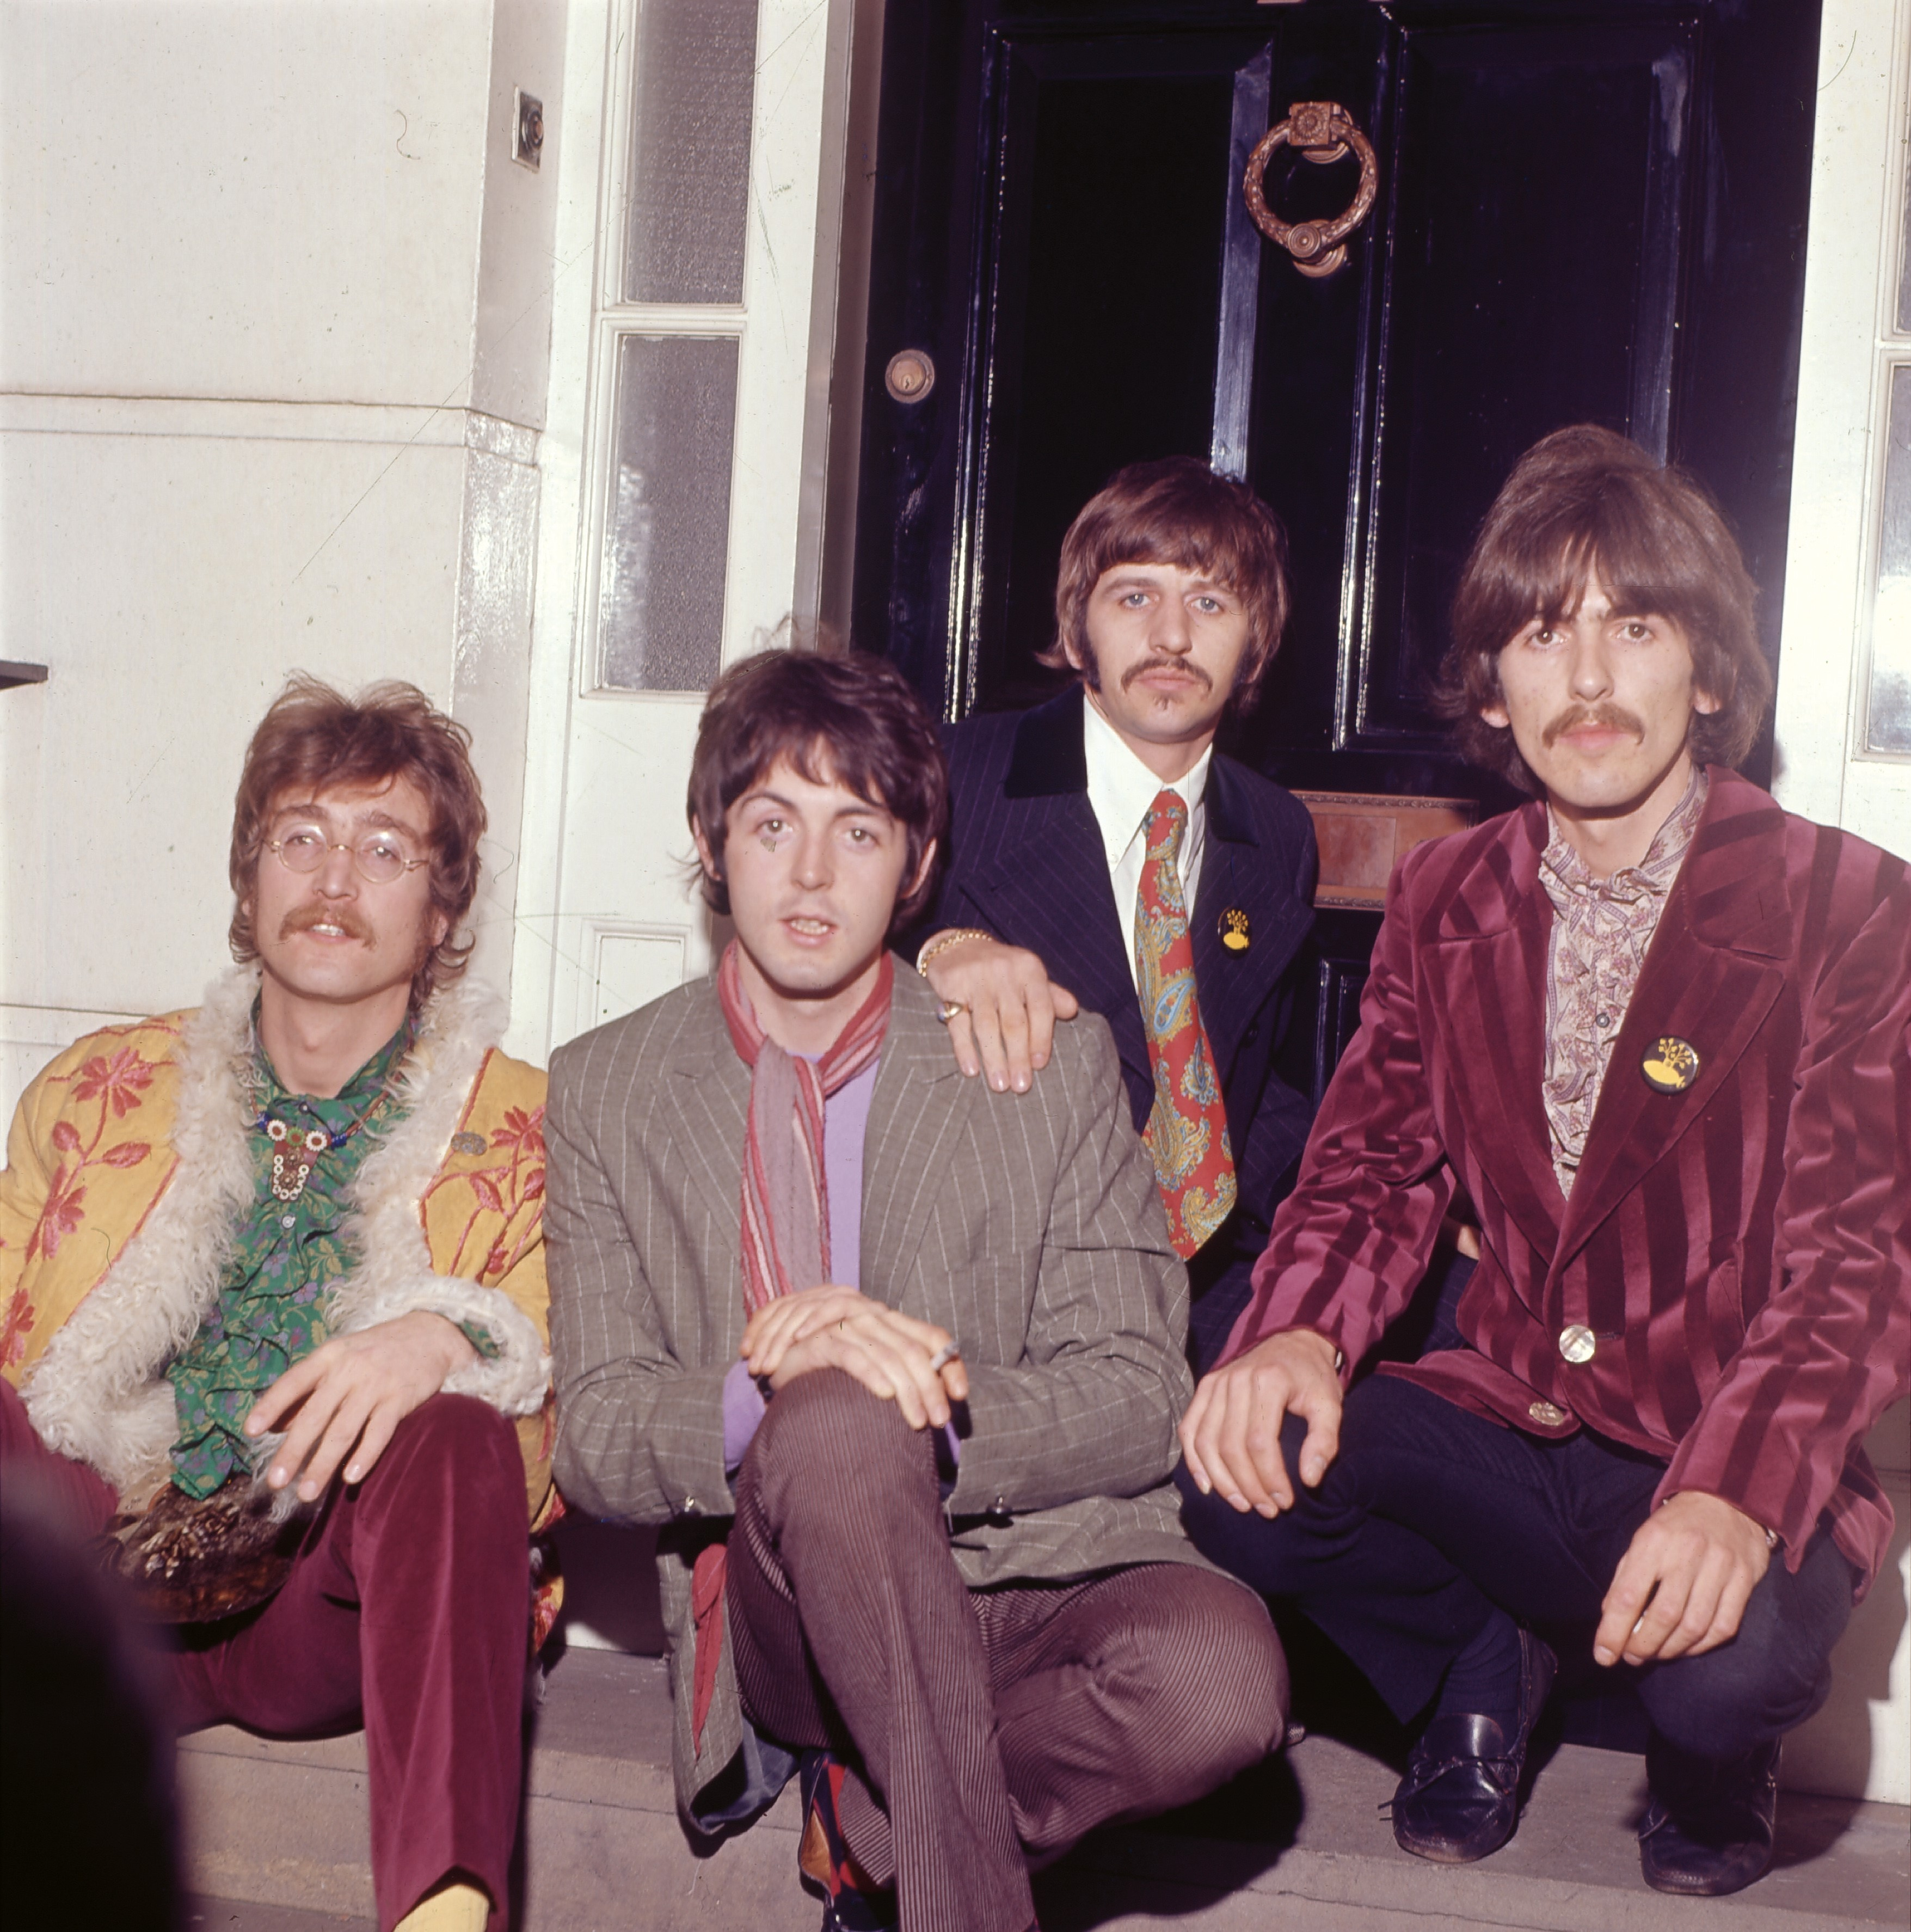 The Beatles photographed in 1967